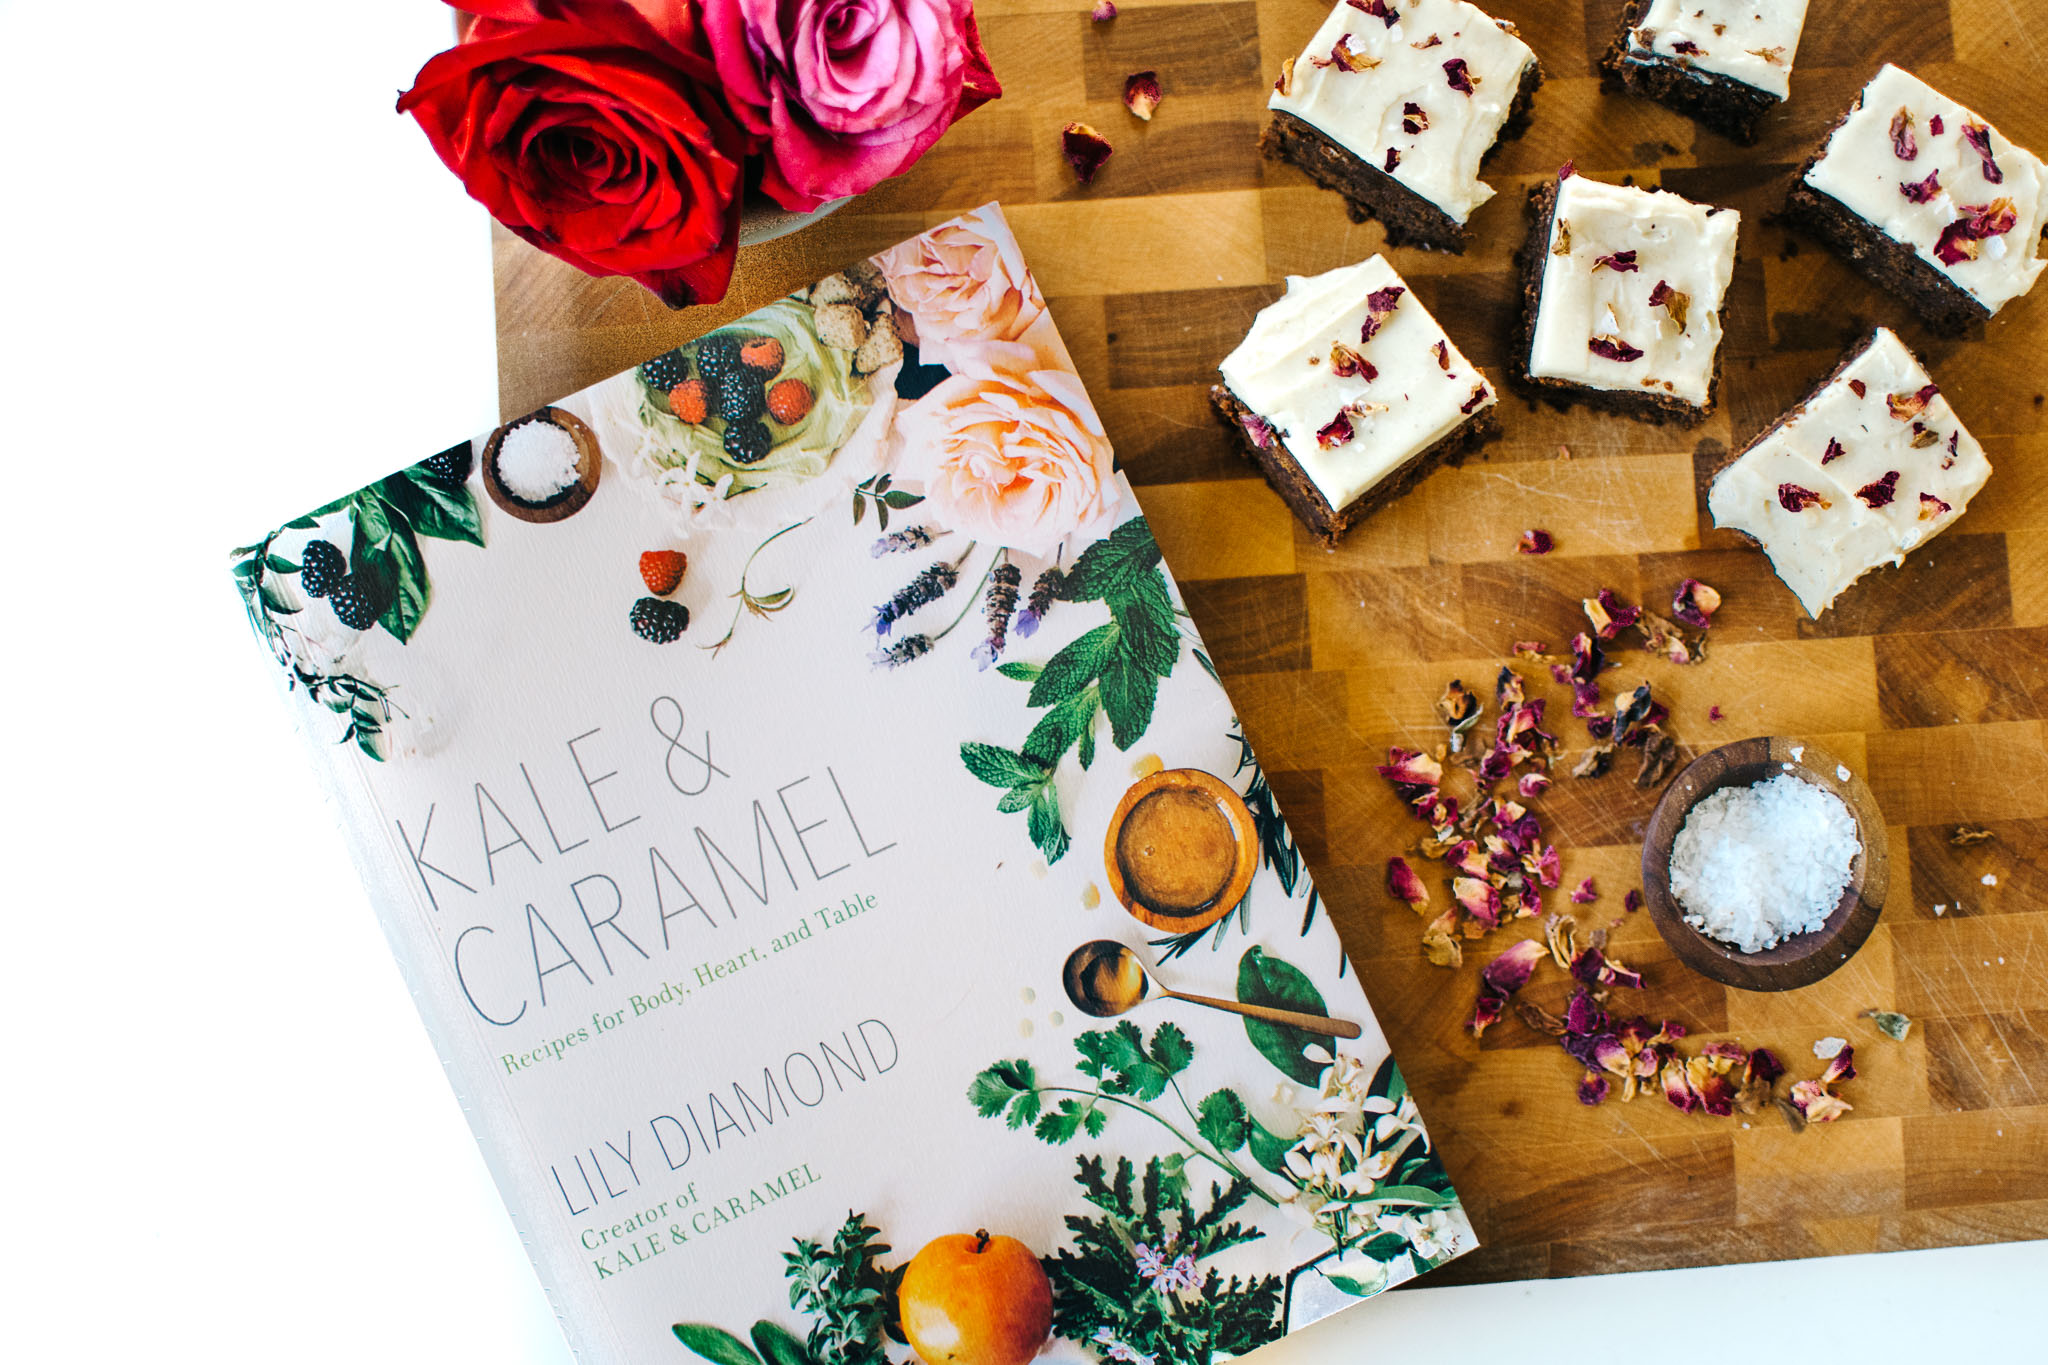 ROSEWATER BROWNIES WITH CARDAMOM TAHINI FROSTING + A COOKBOOK PREVIEW.